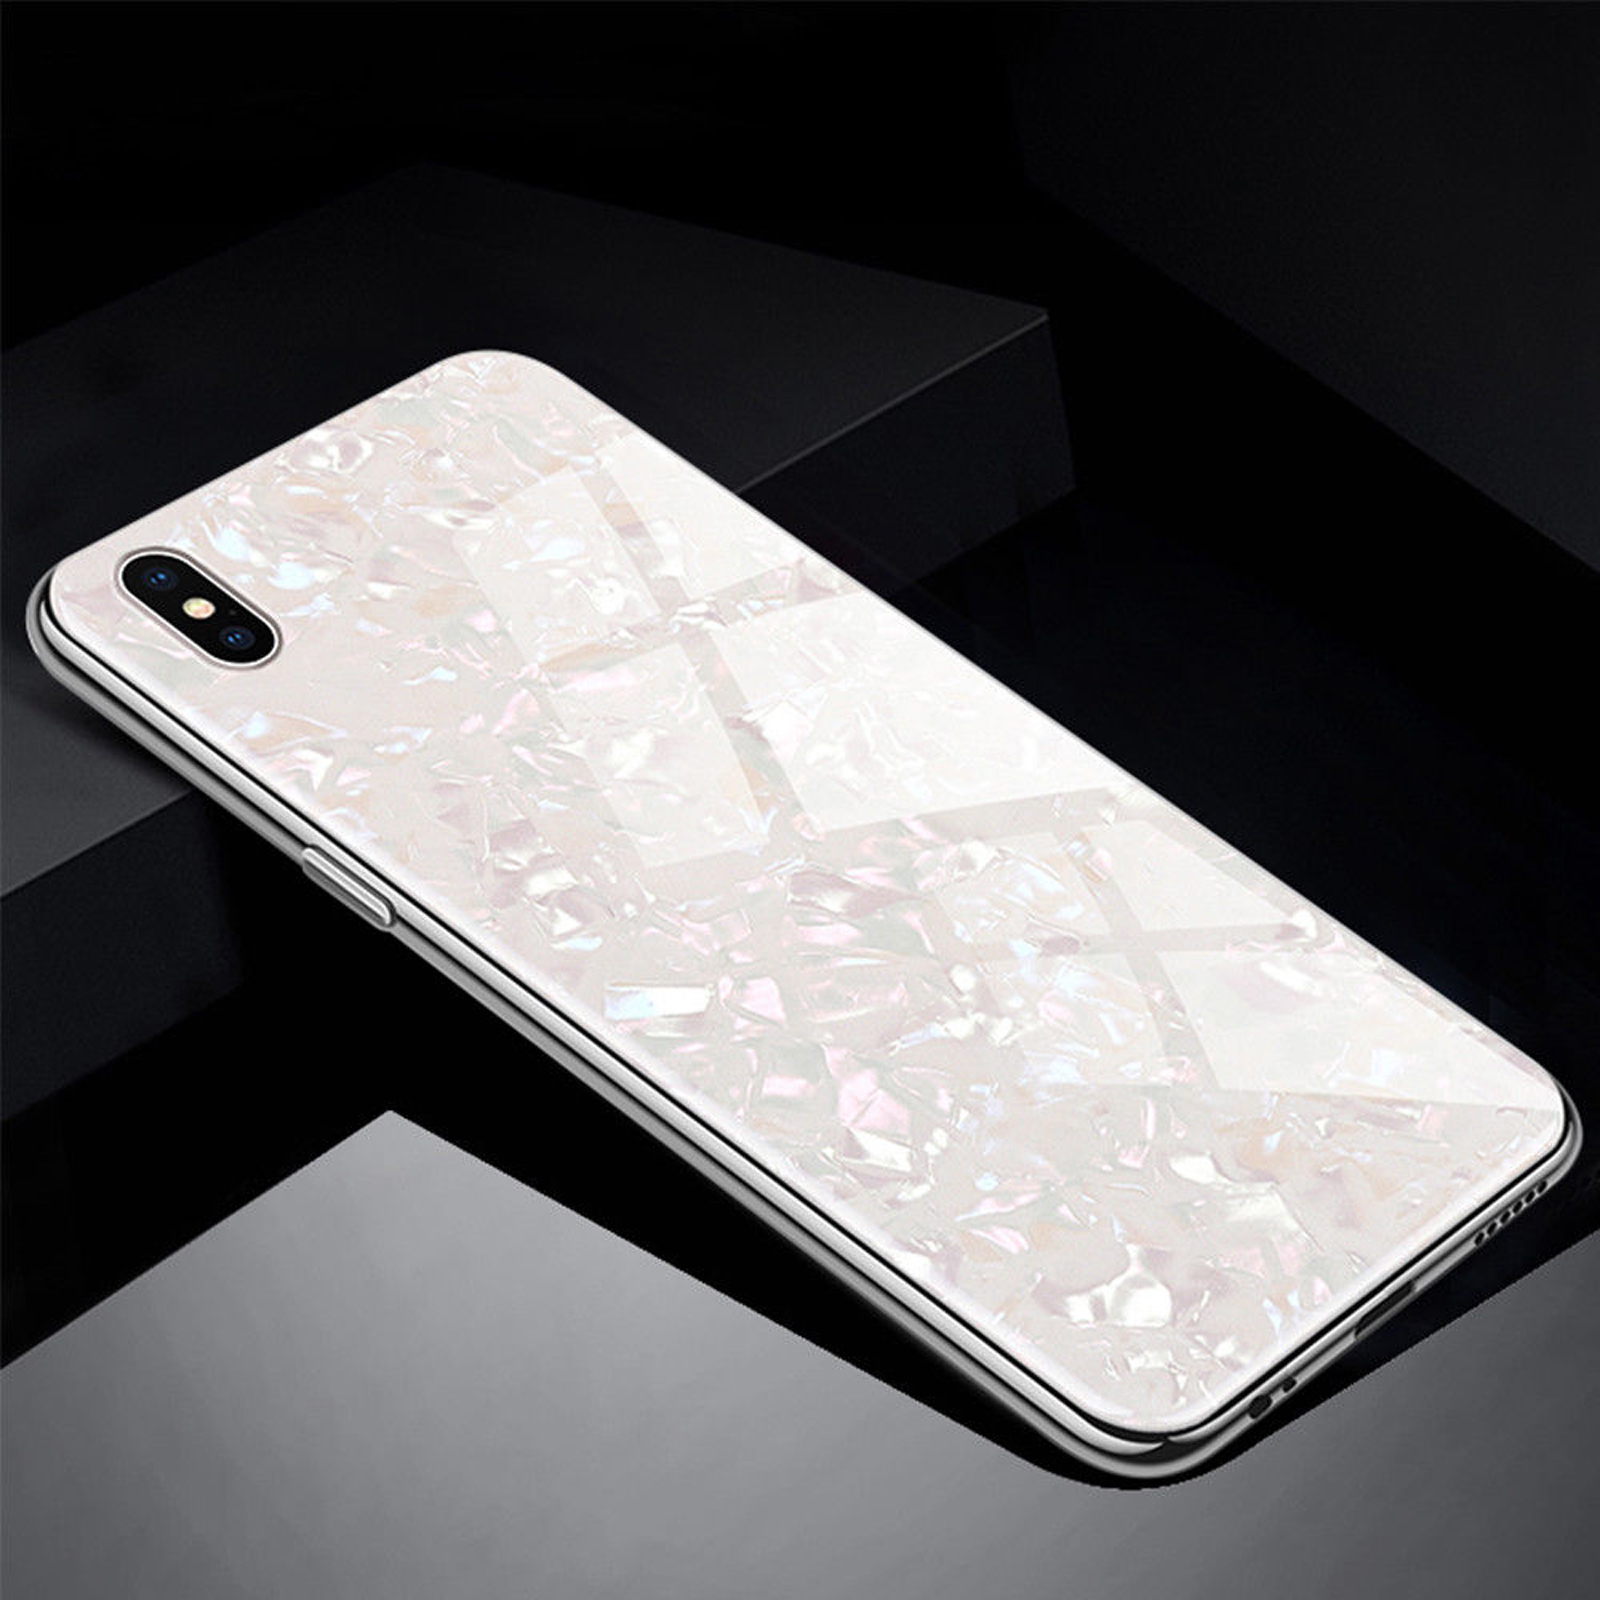 Luxury-Marble-Tempered-Glass-Case-Cover-For-Apple-iPhone-X-XS-XR-Max-10-8-7-6s-6 miniature 48